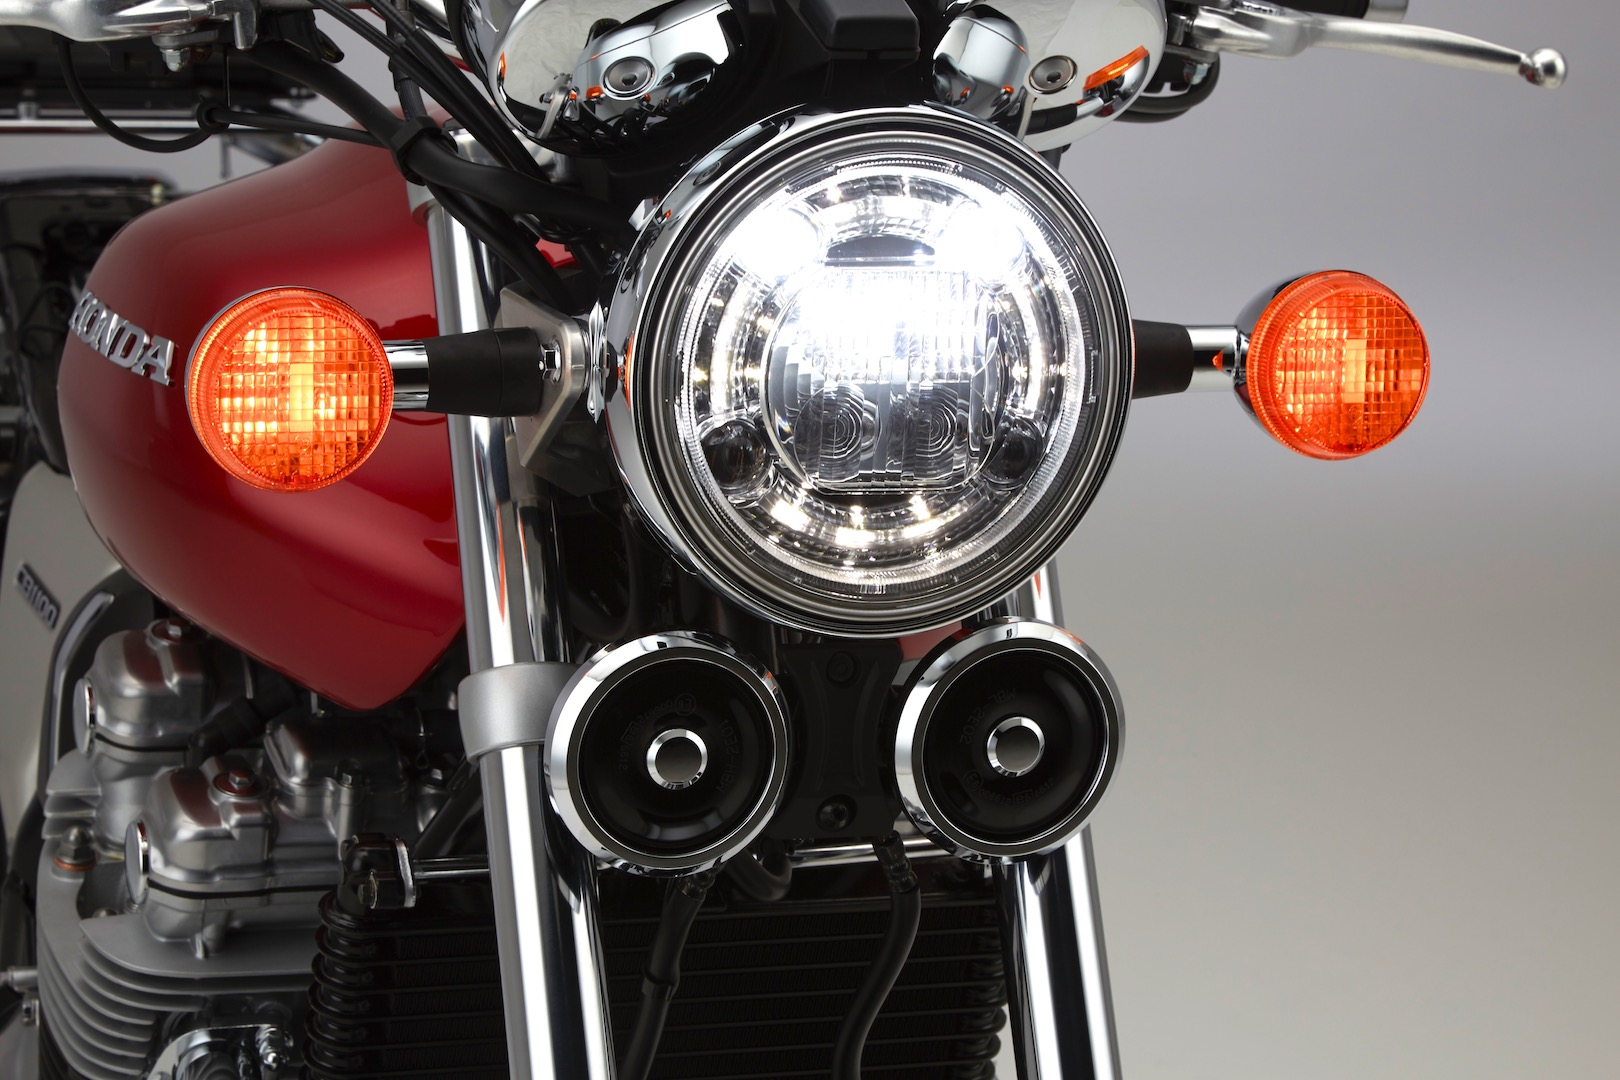 hight resolution of 2017 honda cb1100 ex headlight